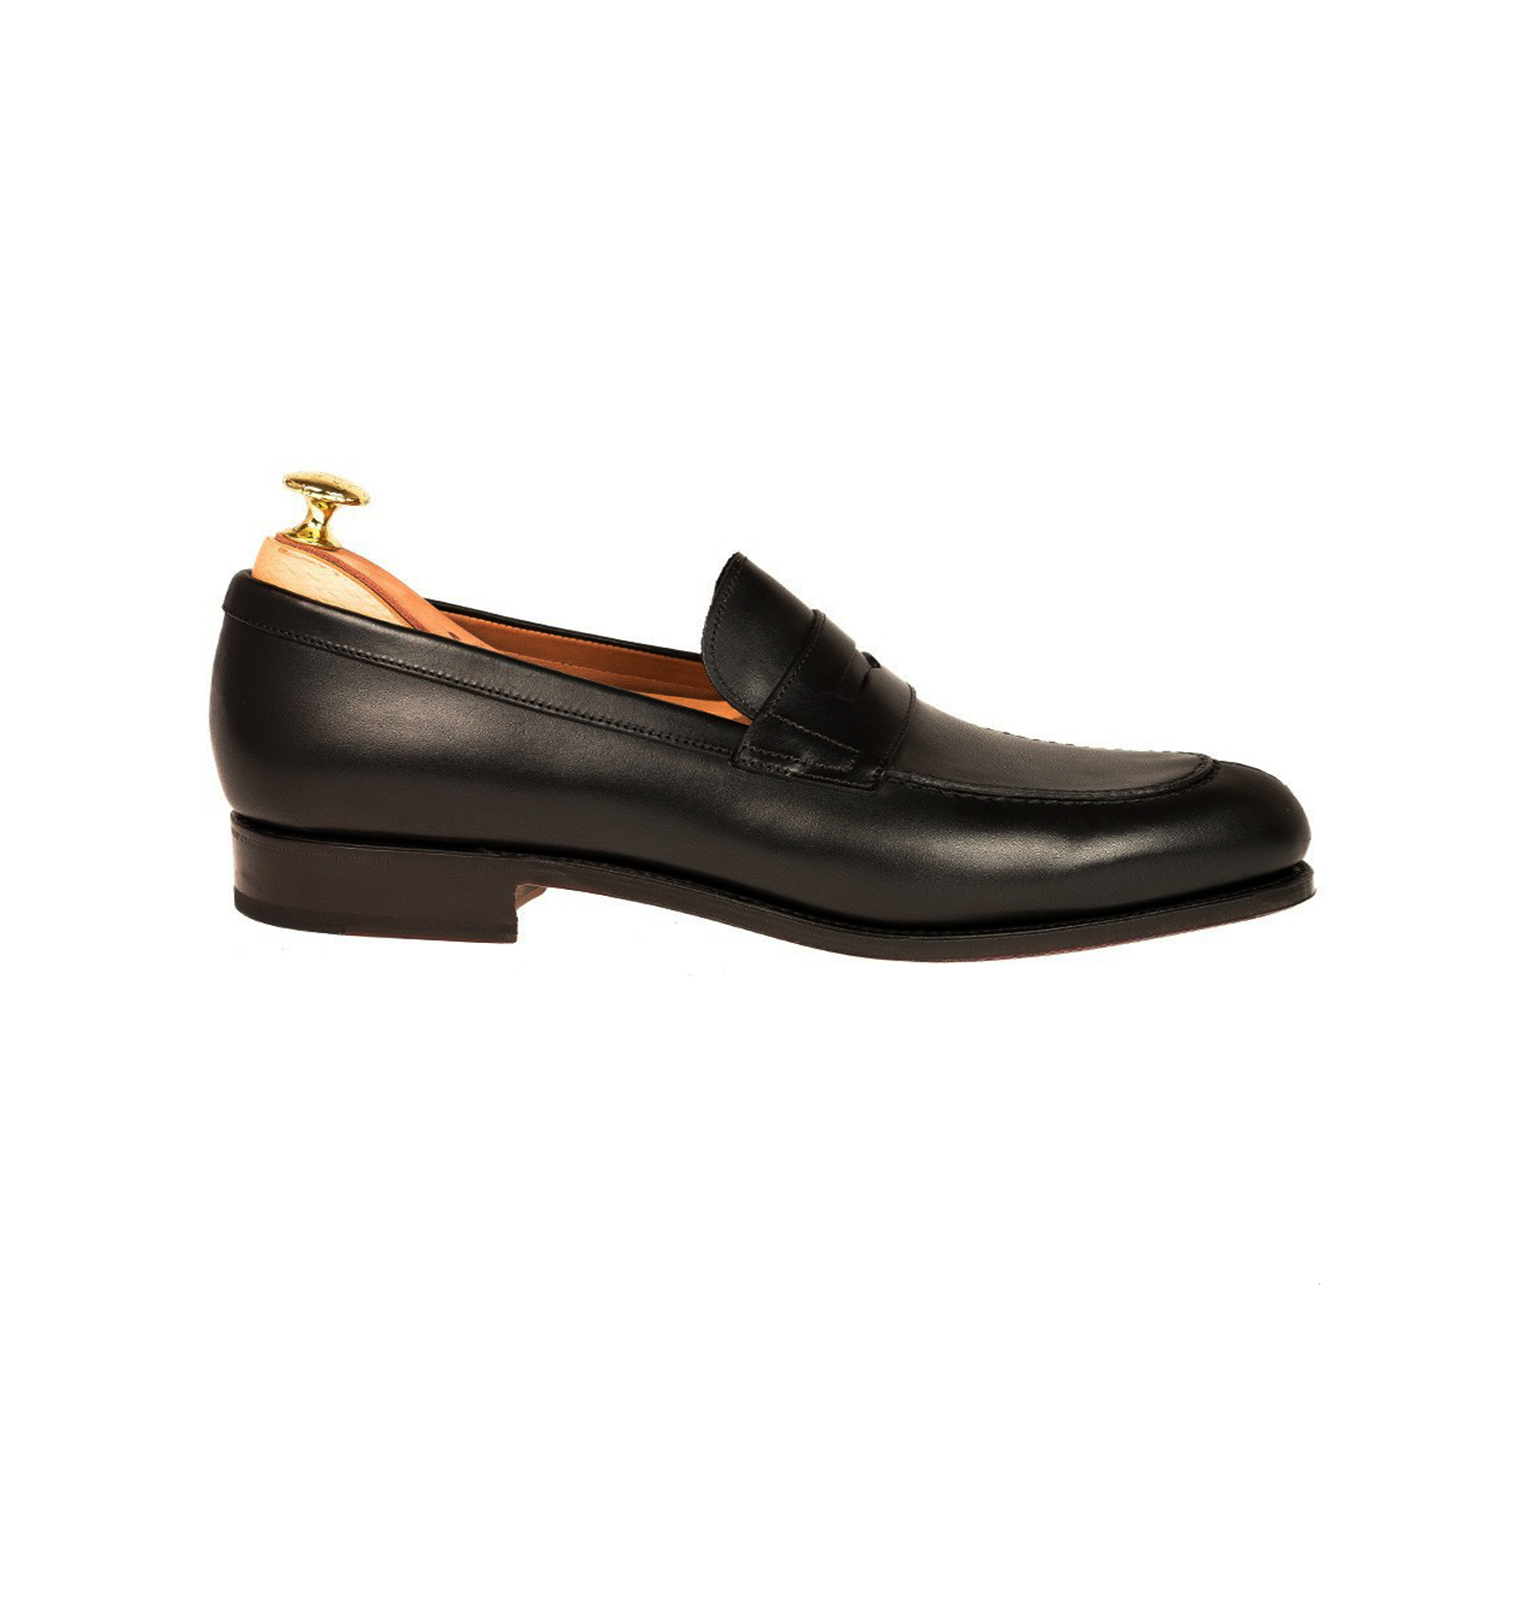 Black Penny Loafers Slip On